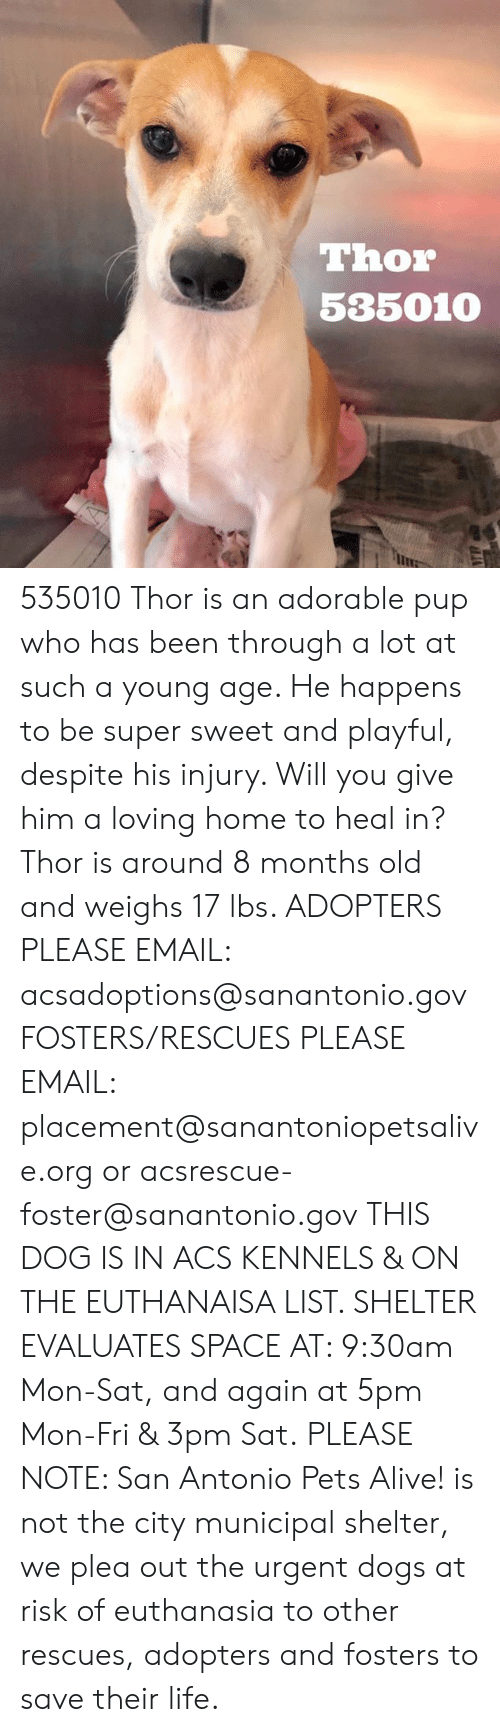 Alive, Dogs, and Life: Thor  535010 535010 Thor is an adorable pup who has been through a lot at such a young age. He happens to be super sweet and playful, despite his injury. Will you give him a loving home to heal in? Thor is around 8 months old and weighs 17 lbs.   ADOPTERS PLEASE EMAIL:  acsadoptions@sanantonio.gov  FOSTERS/RESCUES PLEASE EMAIL: placement@sanantoniopetsalive.org or acsrescue-foster@sanantonio.gov  THIS DOG IS IN ACS KENNELS & ON THE EUTHANAISA LIST. SHELTER EVALUATES SPACE AT: 9:30am Mon-Sat, and again at 5pm Mon-Fri & 3pm Sat.  PLEASE NOTE: San Antonio Pets Alive! is not the city municipal shelter, we plea out the urgent dogs at risk of euthanasia to other rescues, adopters and fosters to save their life.